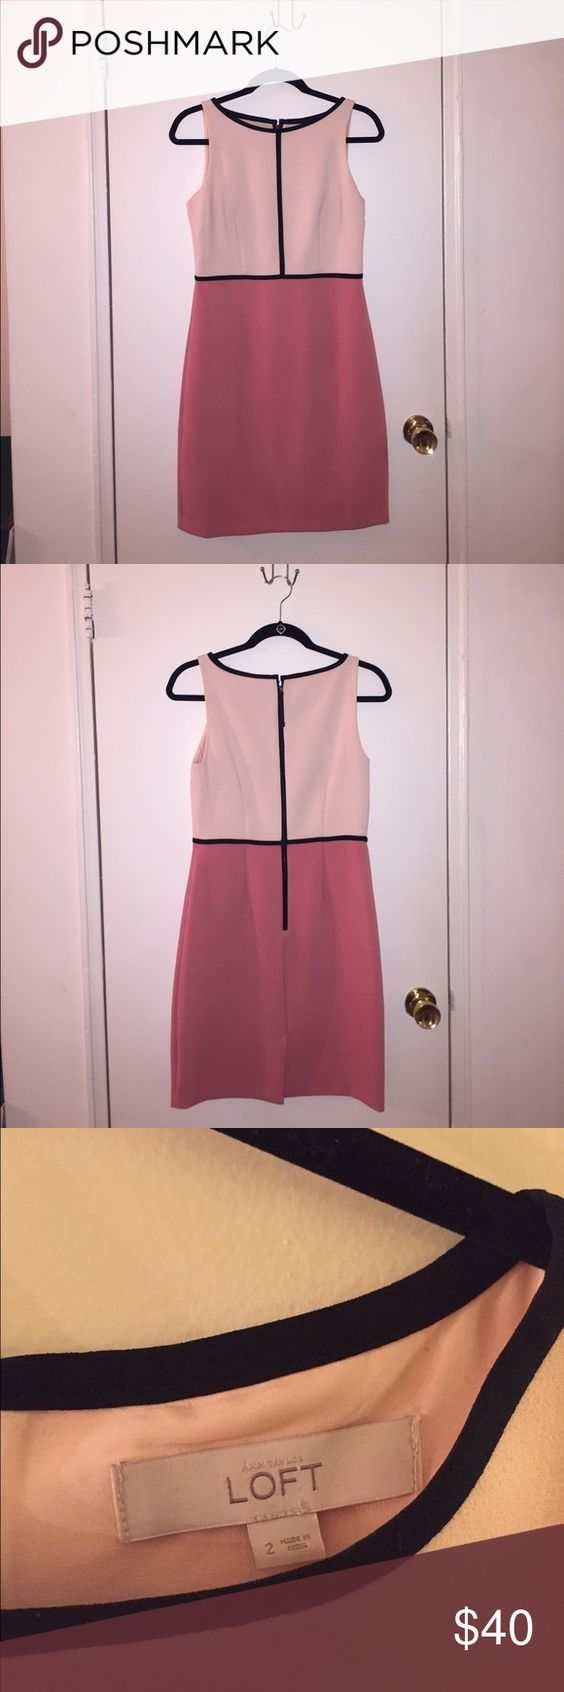 Ann Taylor LOFT color block salmon pink dress Worn once or twice! Color block salmon pink sleeveless dress. Comes to the knee and is a polyester rayon blend. Perfect for work or a wedding! LOFT Dresses